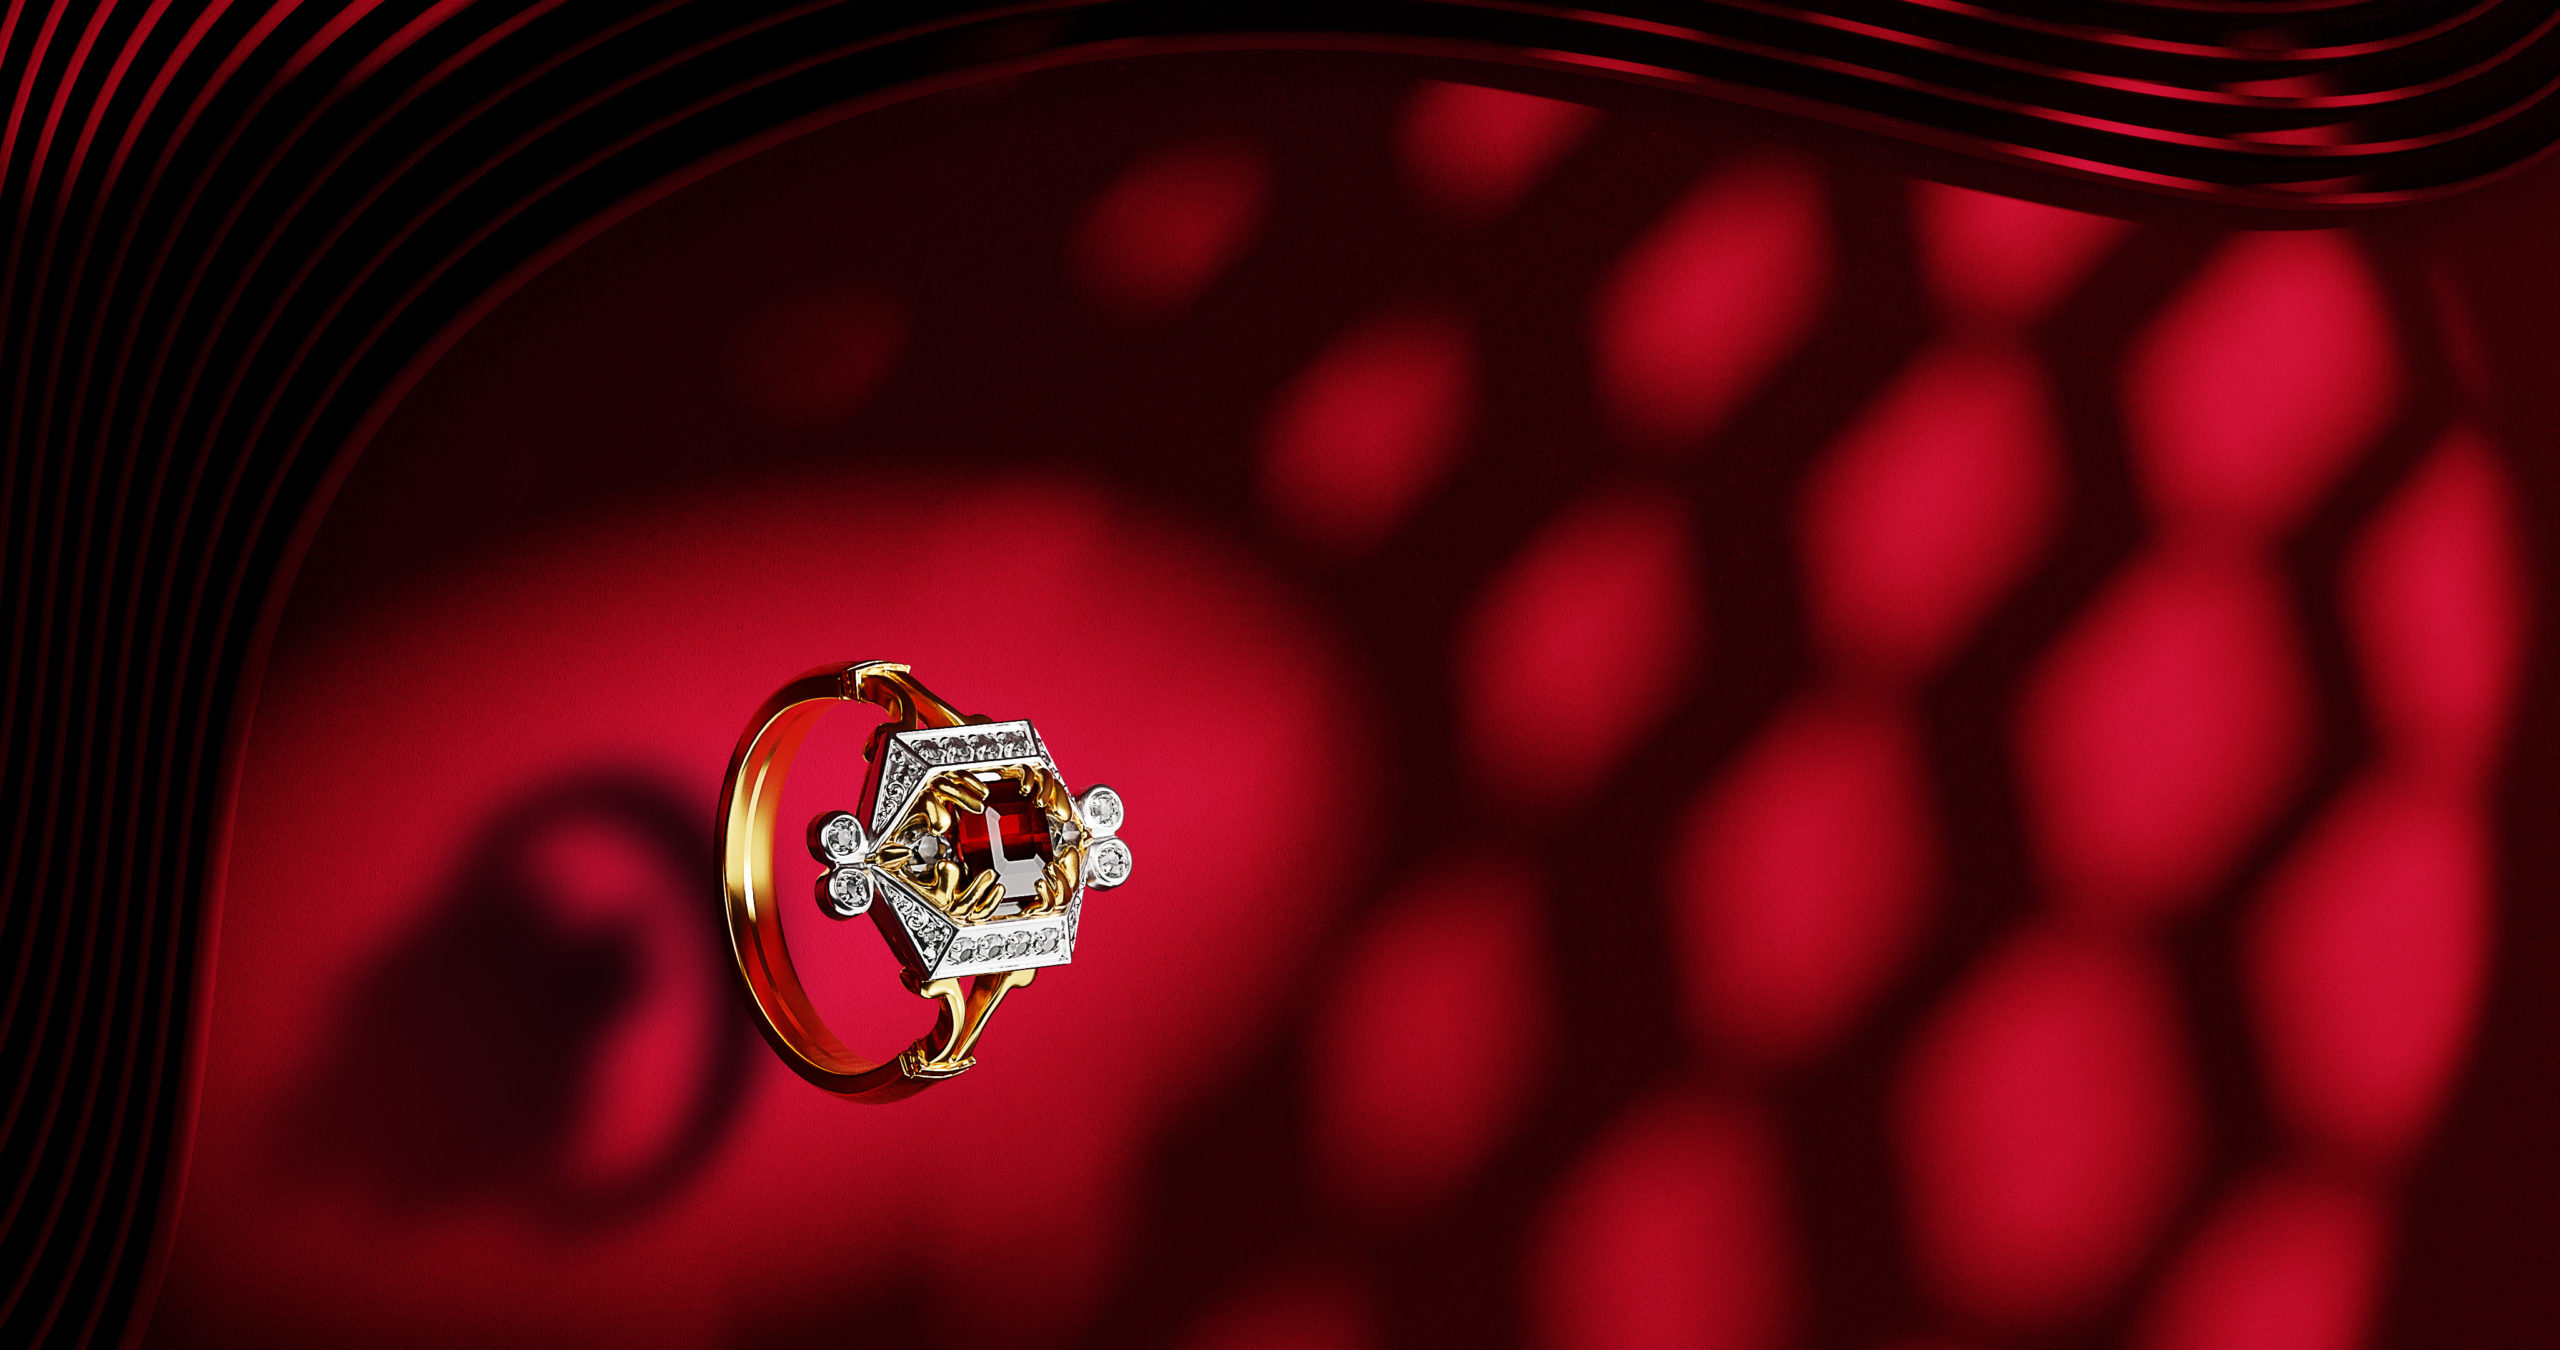 Wenbo Zhao-CGI Jewellery Photography with Object Maker-Red Shadow and gold ring- CGI BTS